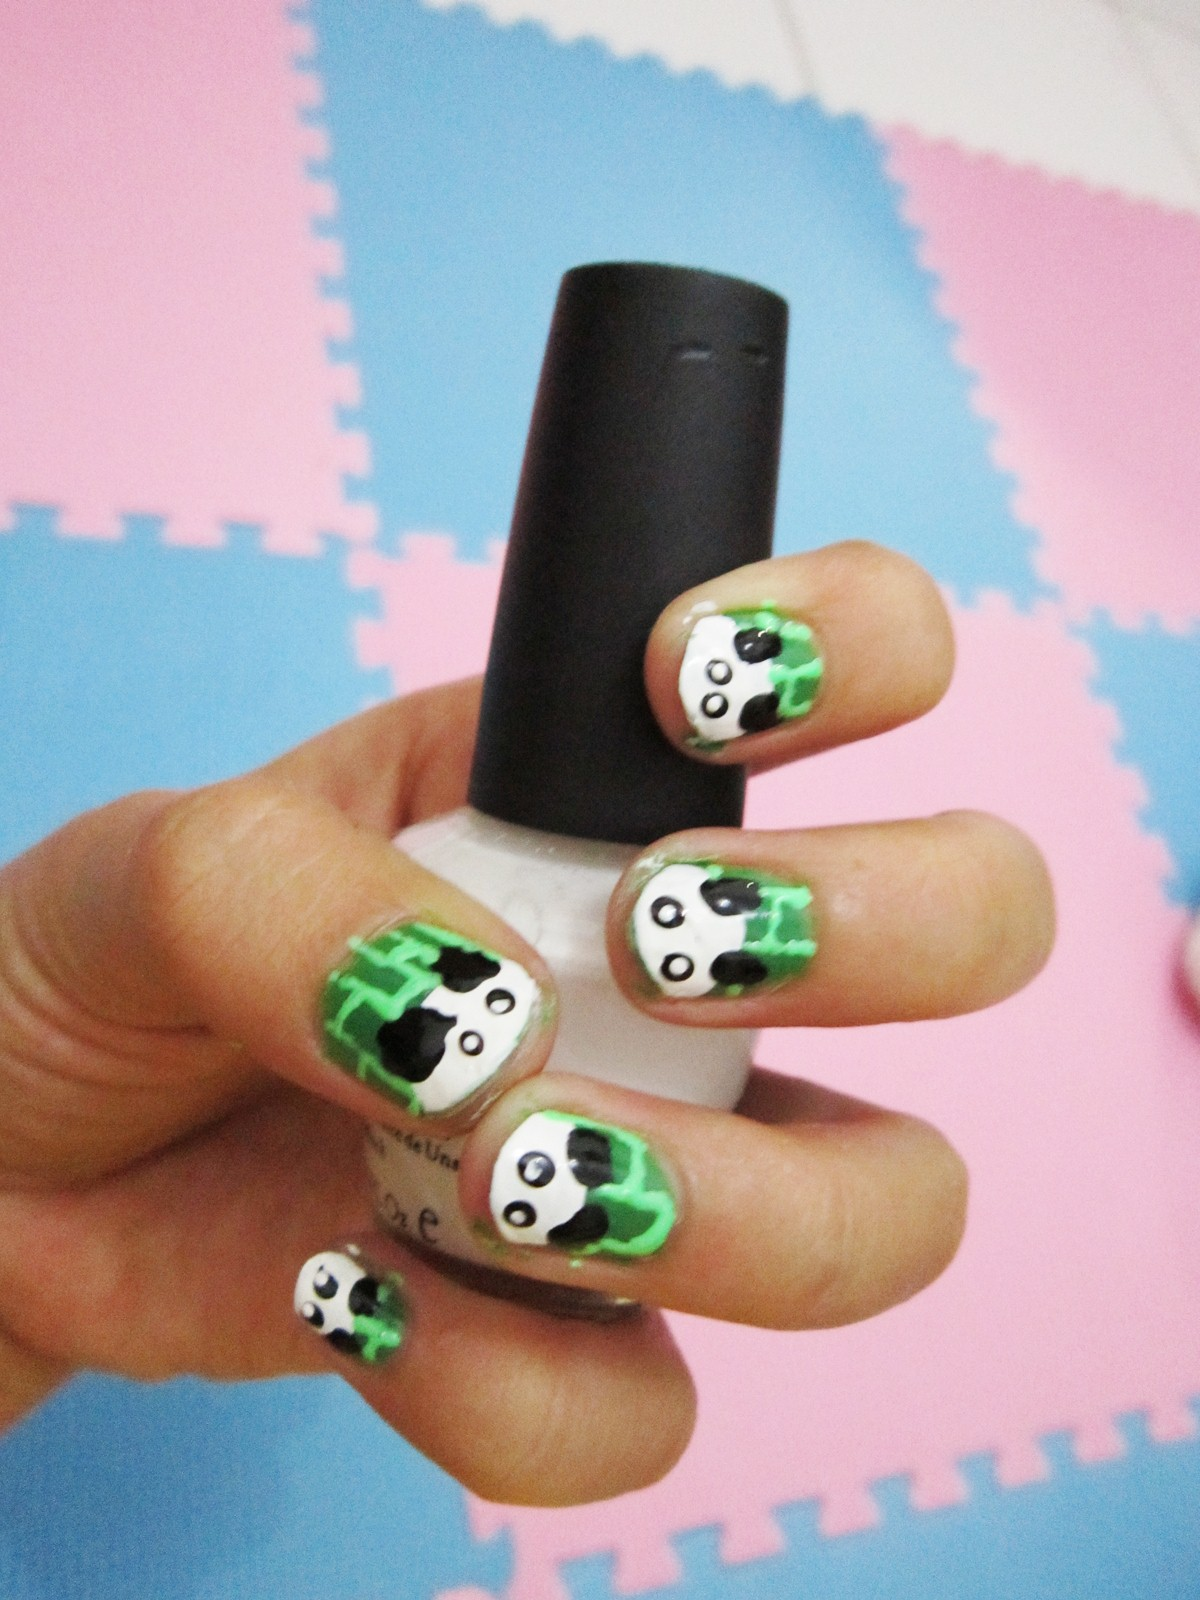 Mushiiedots diy panda in a bamboo forest nail art diy panda in a bamboo forest nail art prinsesfo Gallery